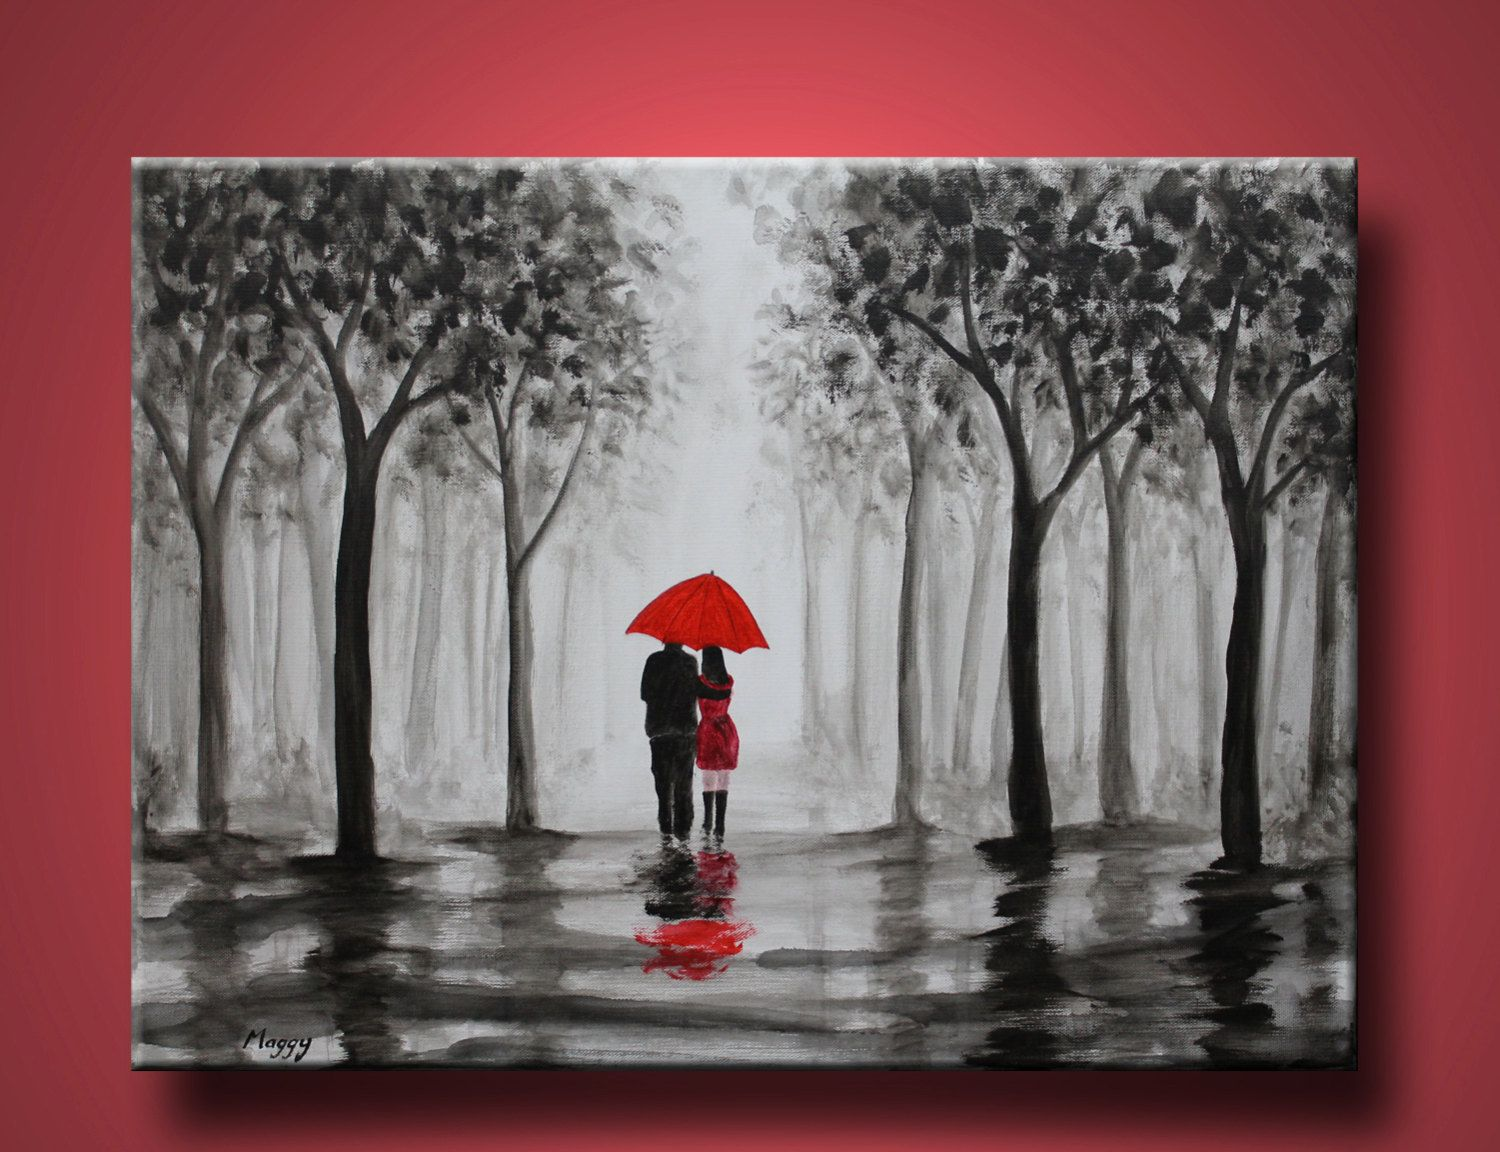 Original abstract paintingred umbrella home decor walking in rain